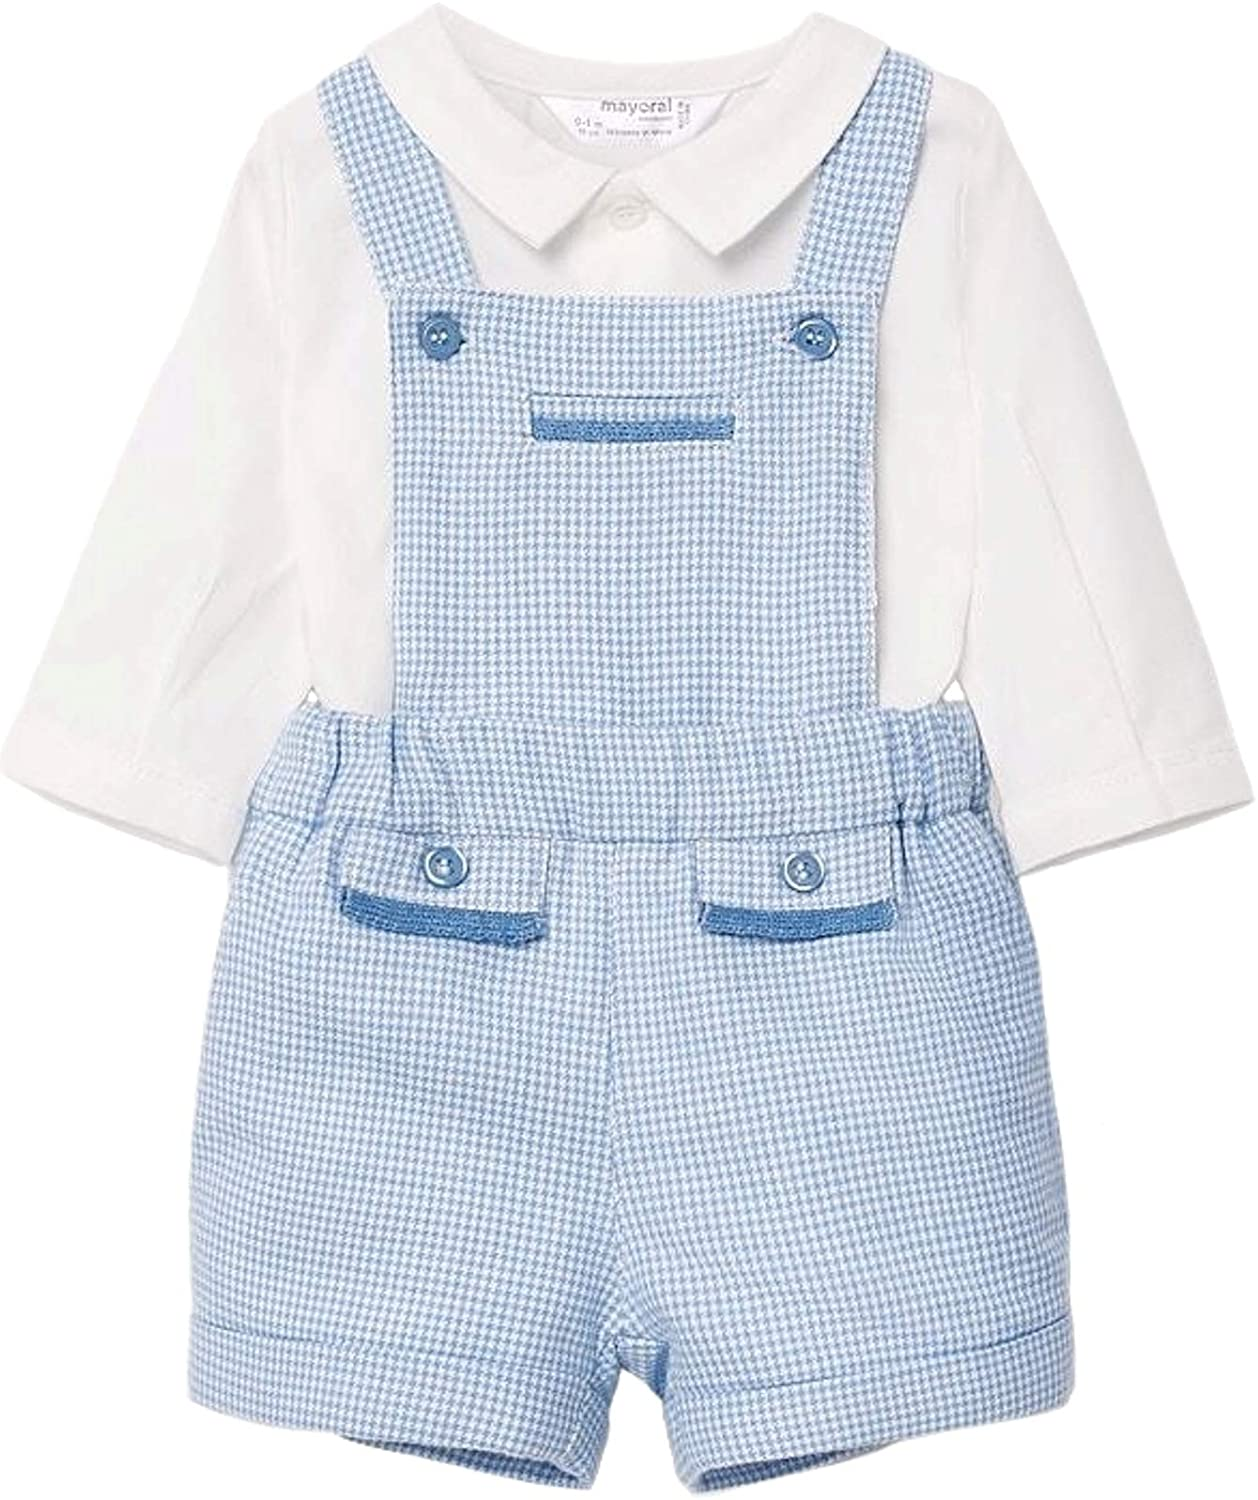 Mayoral - Short Dungaree & Shirt Set for Baby-Boys - 2636, Pacific